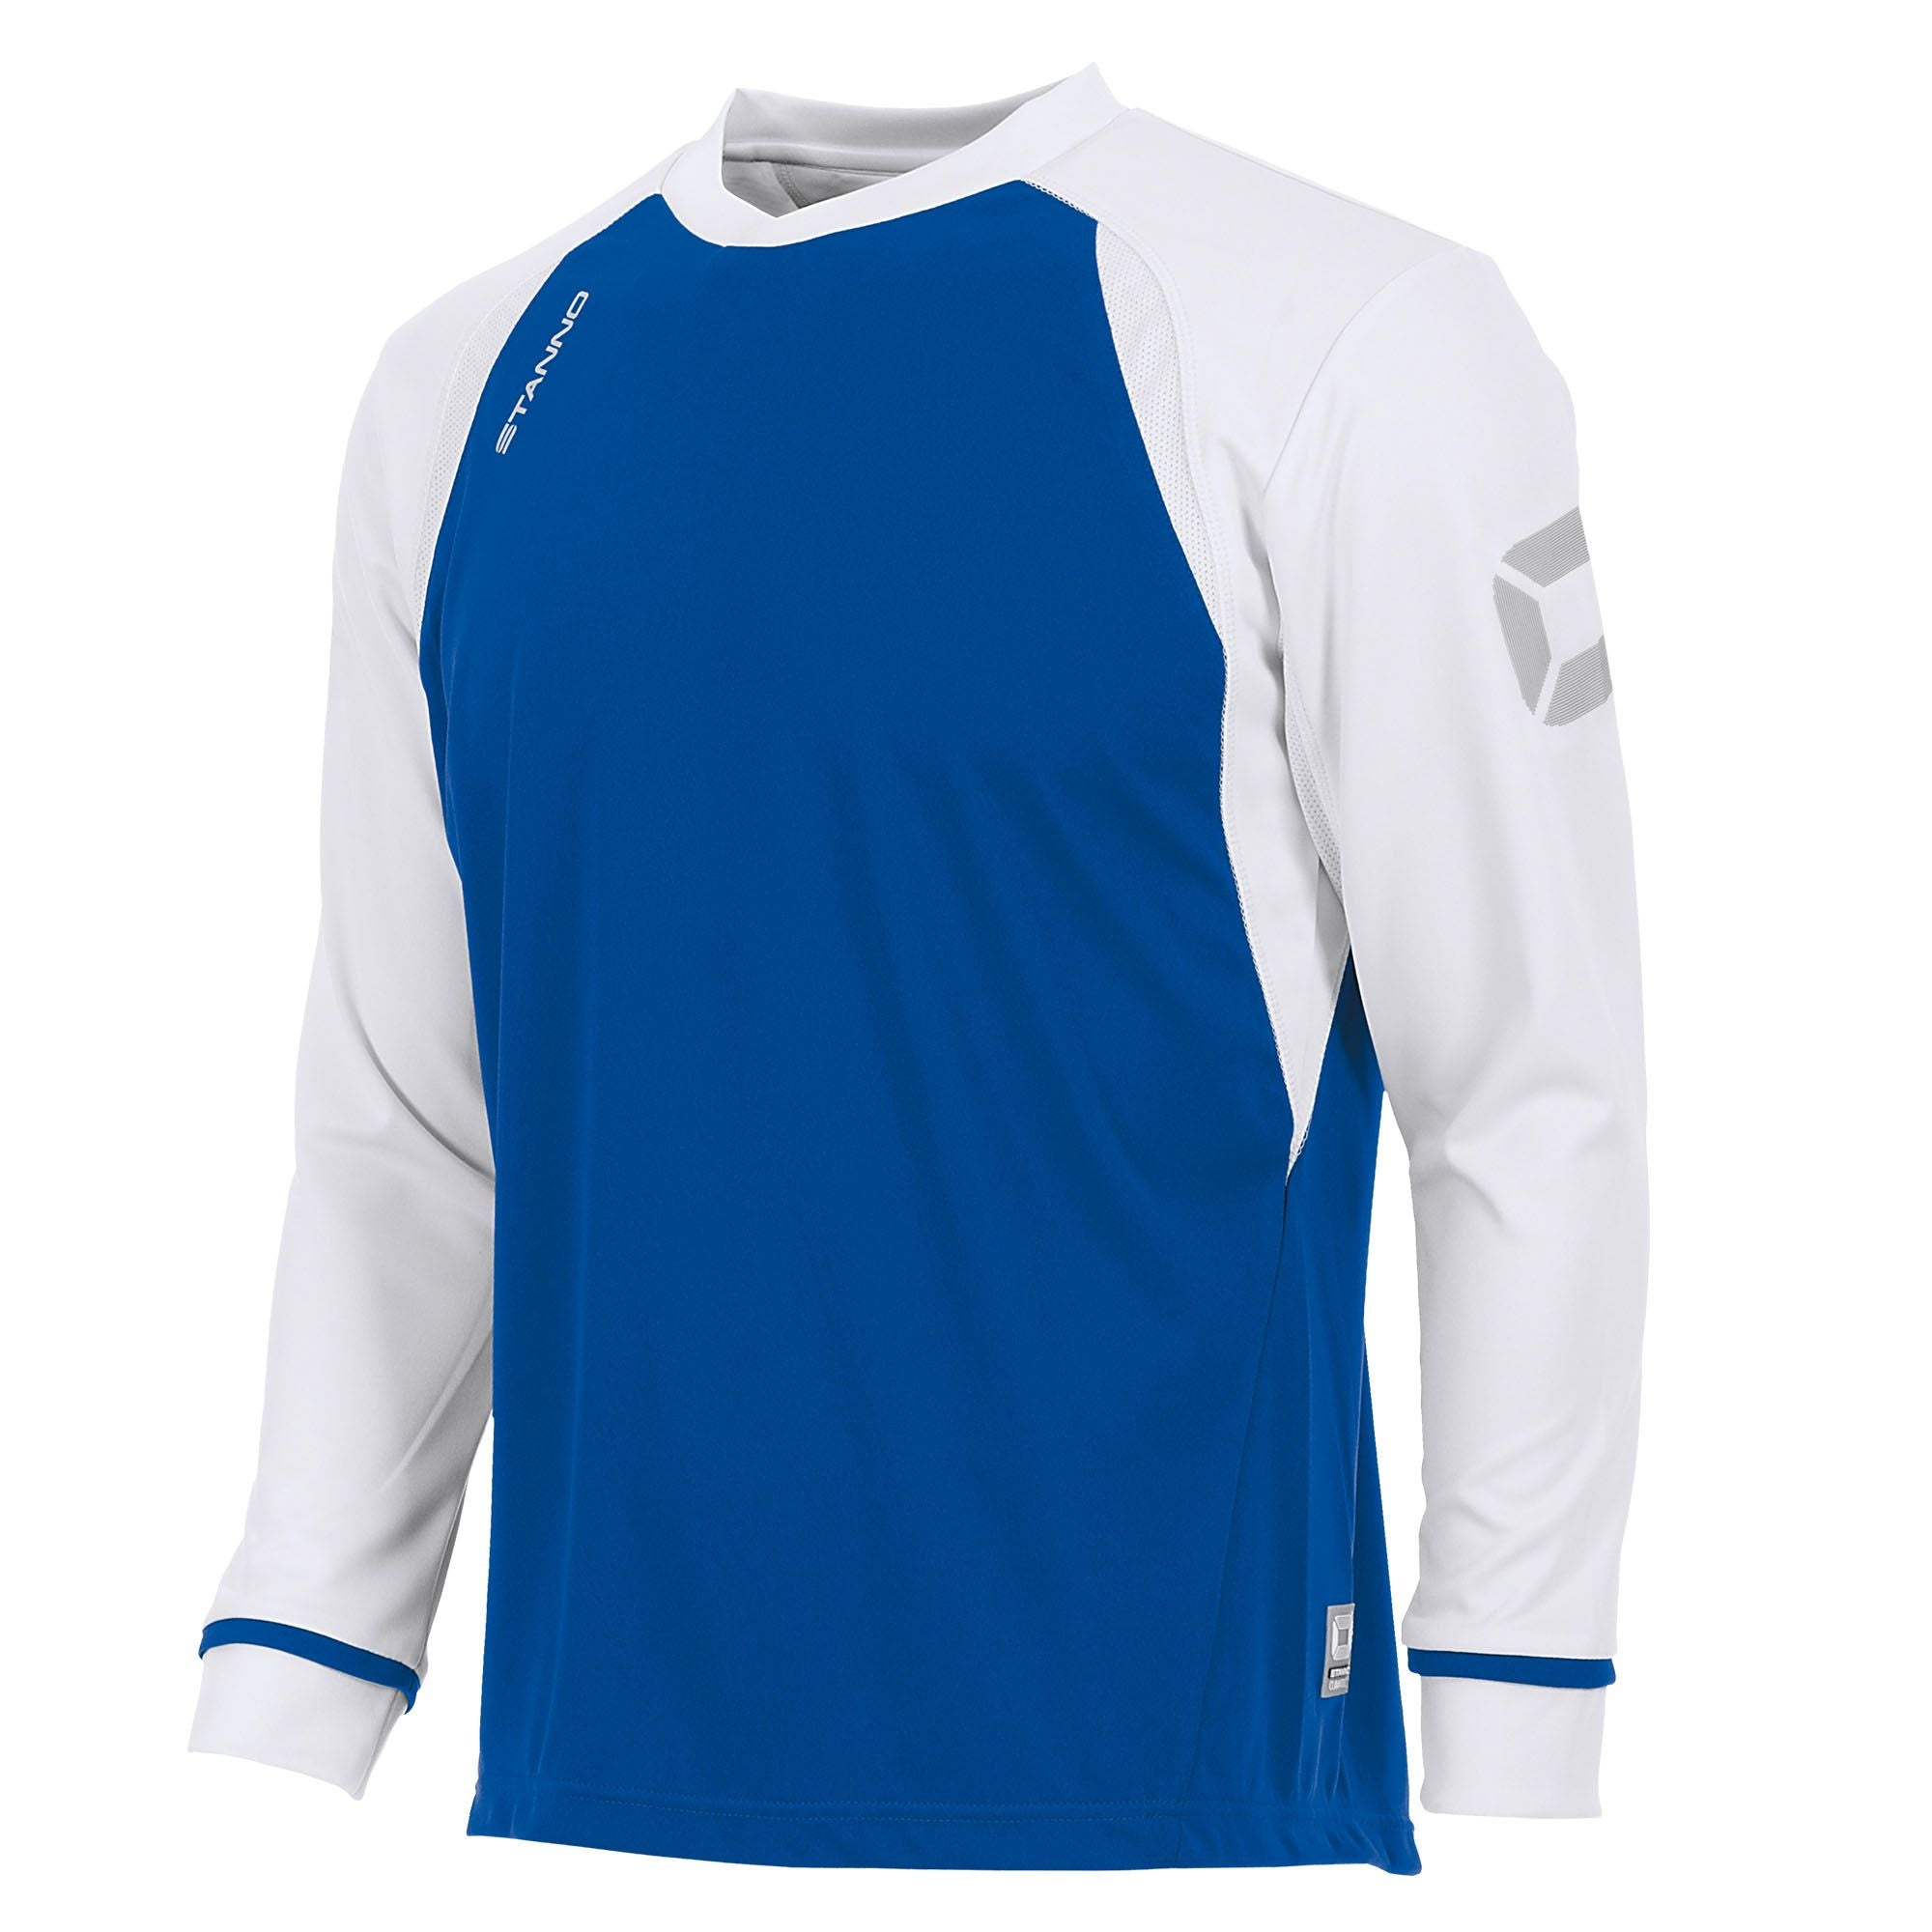 Stanno Liga Long Sleeve shirt in royal blue with contrast white sleeves and collar